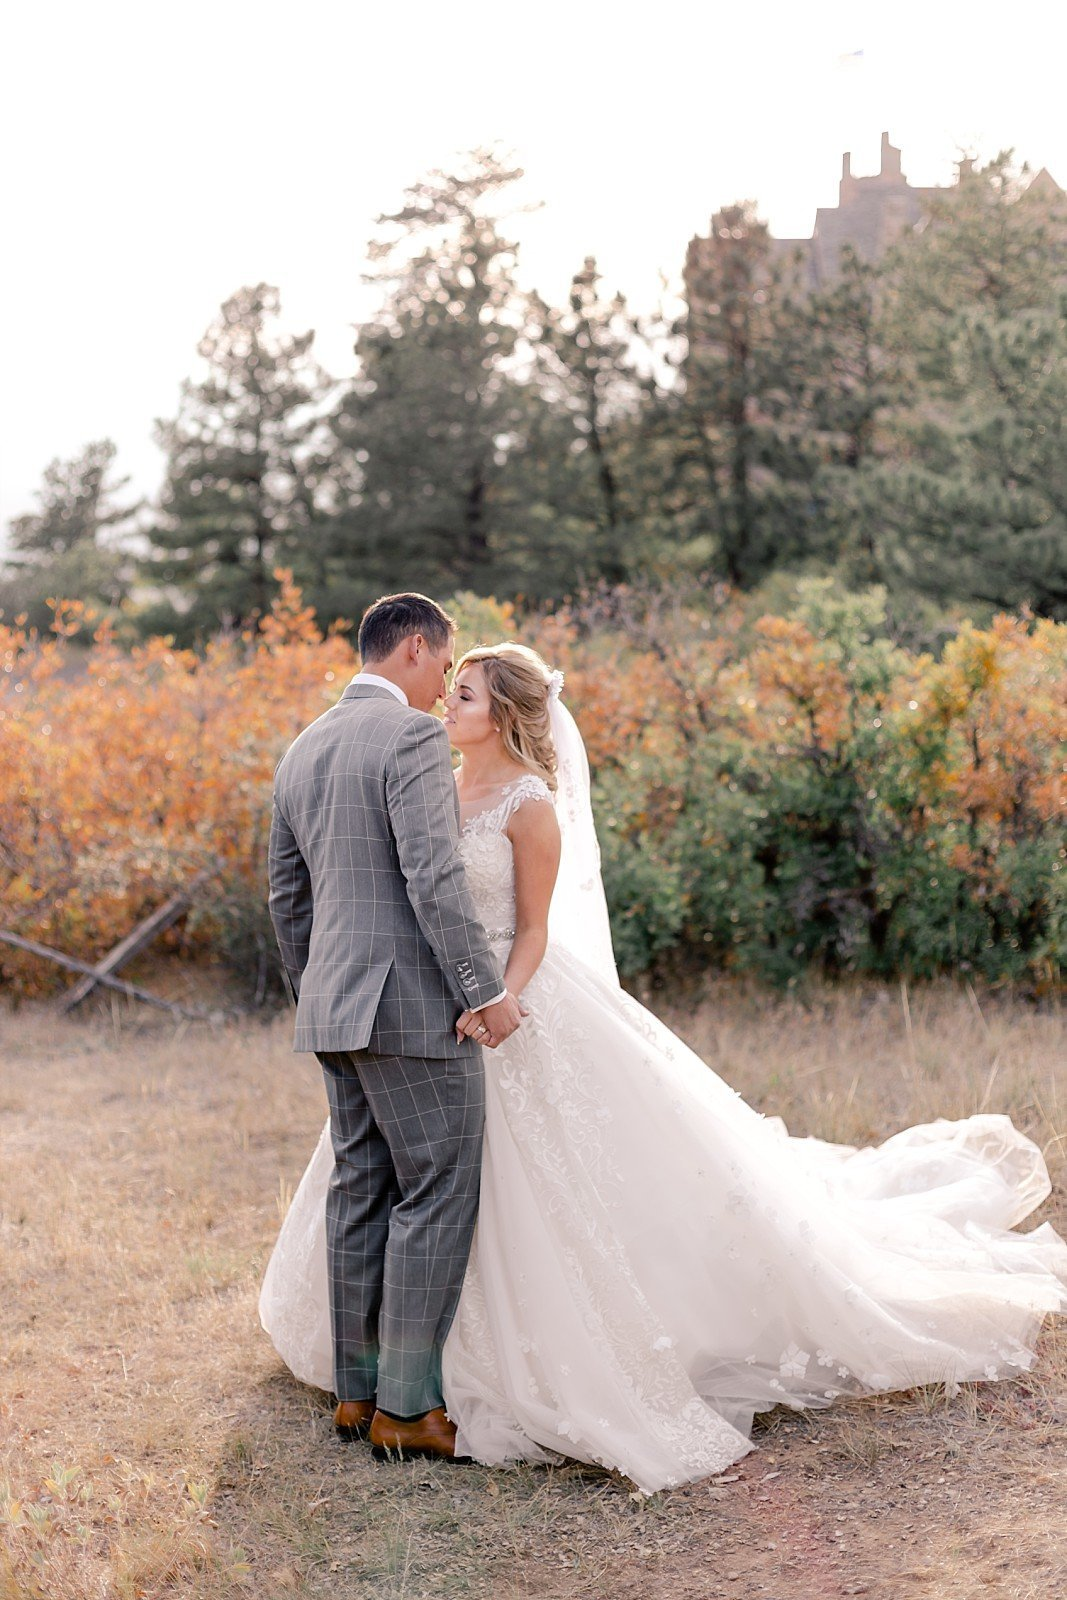 Colorado-Wedding-Photographer_Shelby-Gloudemans_0219